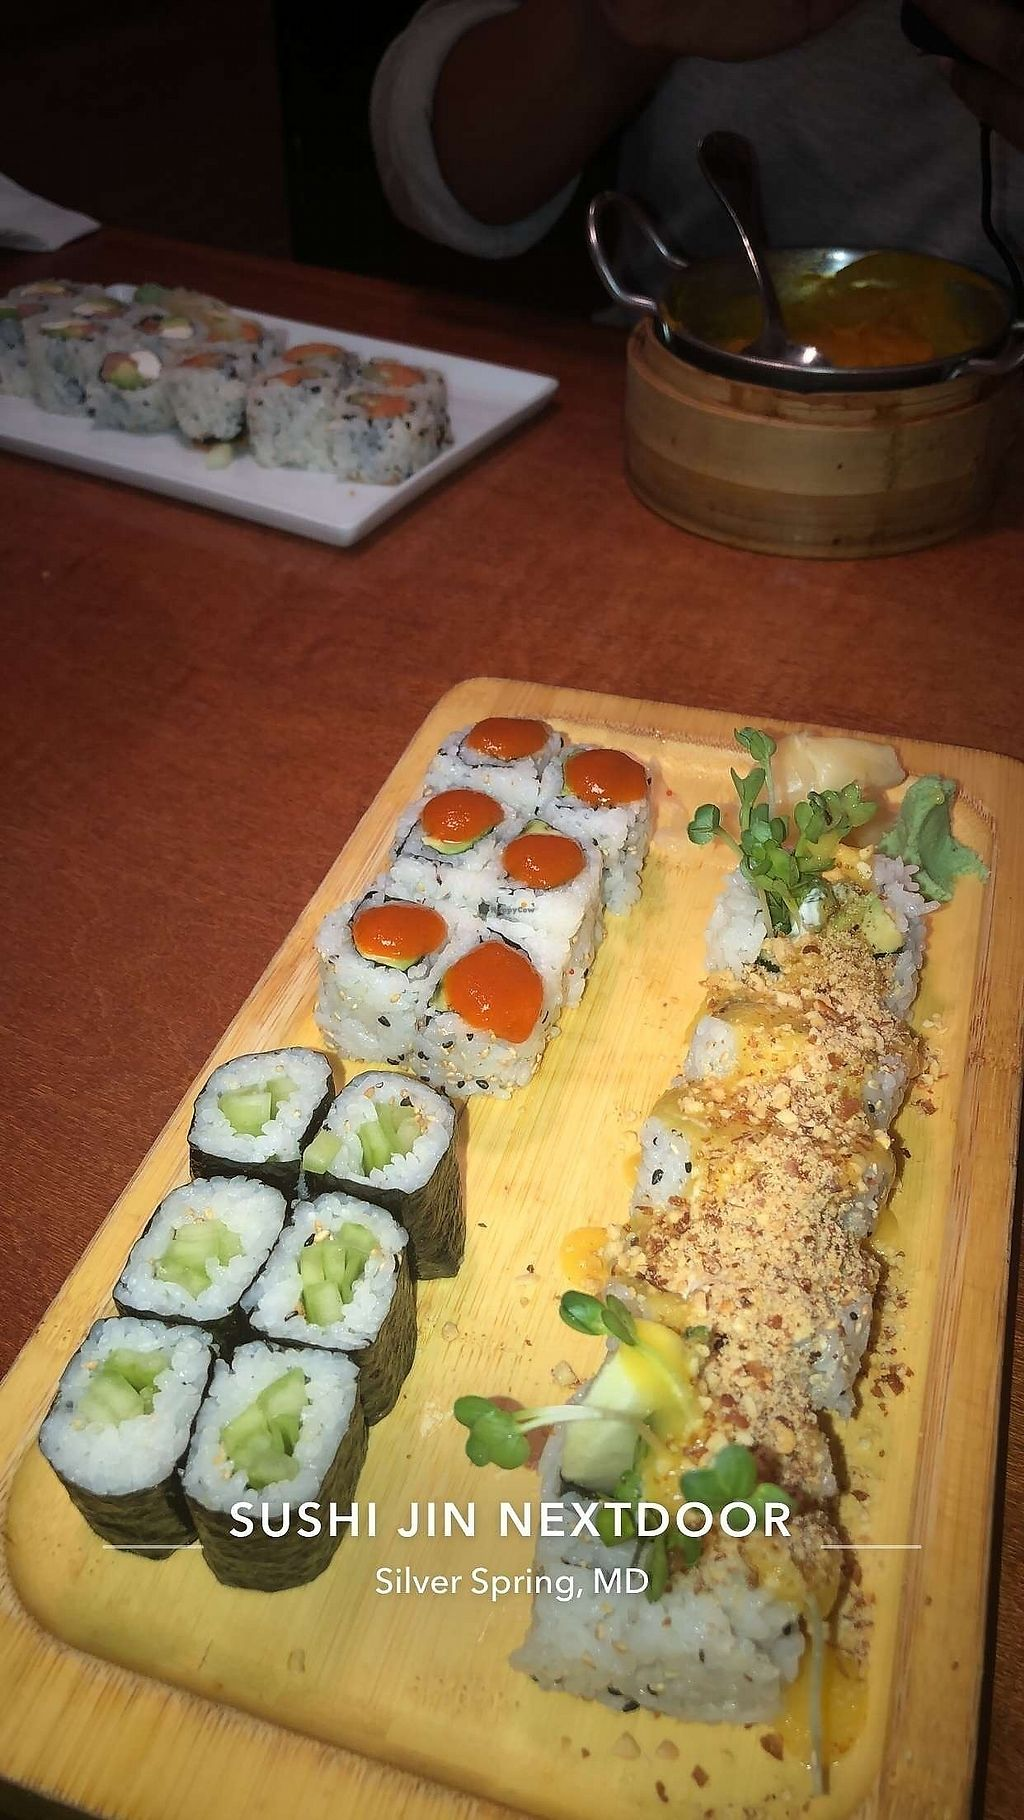 "Photo of Sushi Jin  by <a href=""/members/profile/distinee"">distinee</a> <br/>Spicy Avocado roll (top left), cucumber roll (bottom left) & April roll (right) <br/> January 21, 2018  - <a href='/contact/abuse/image/69115/349373'>Report</a>"